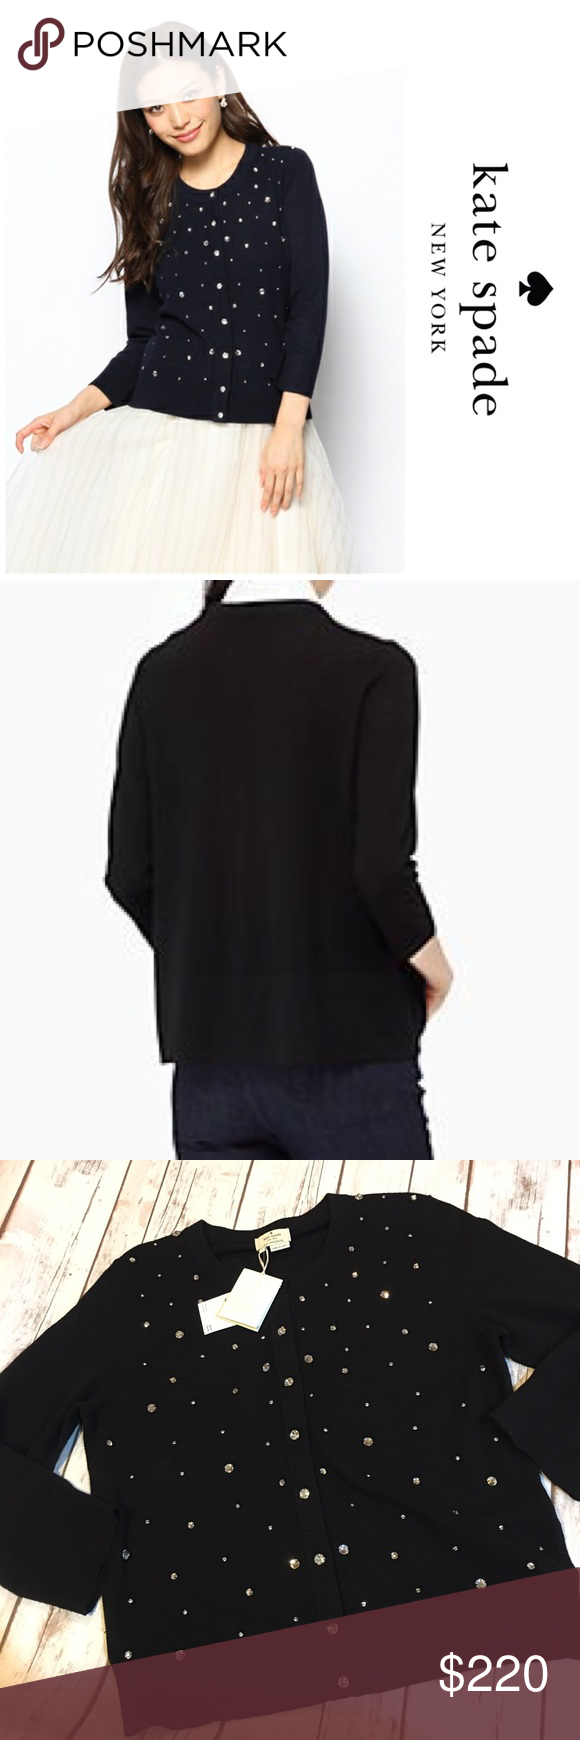 NWT Kate Spade Black Wool Sweater Brand new with tags Kate Spade ...